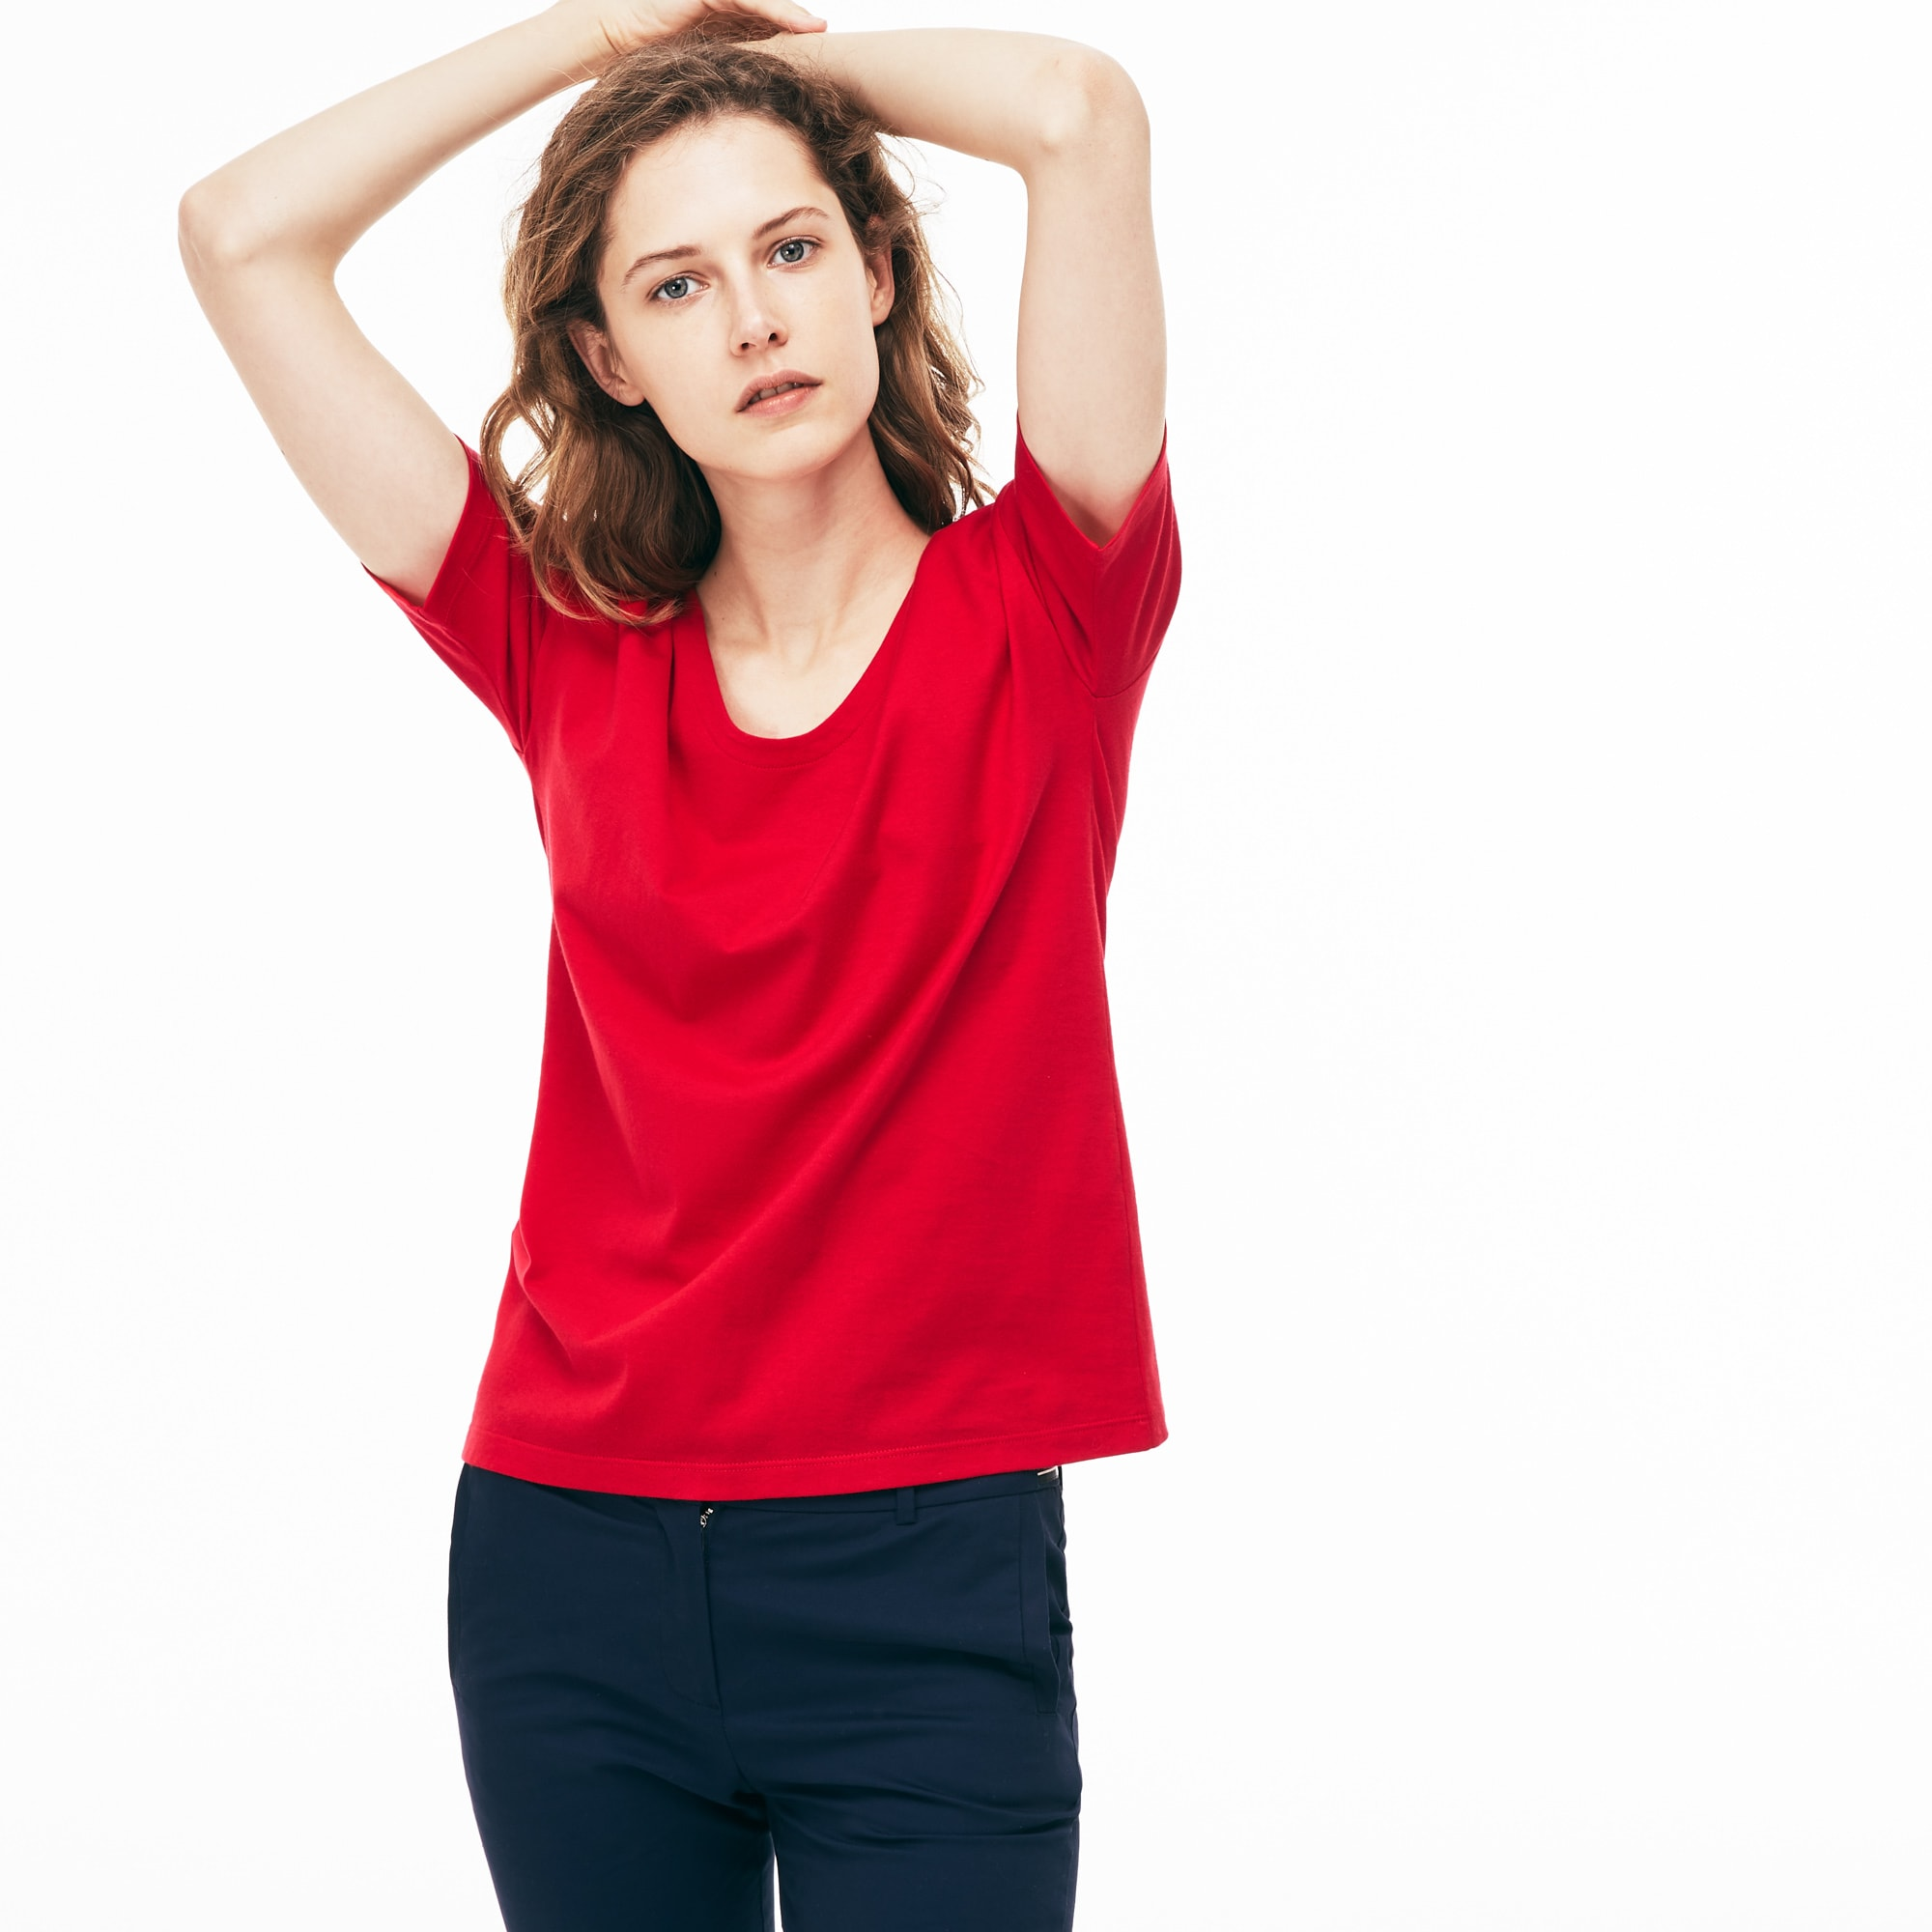 Women's Wide Neck Soft Cotton Jersey T-shirt